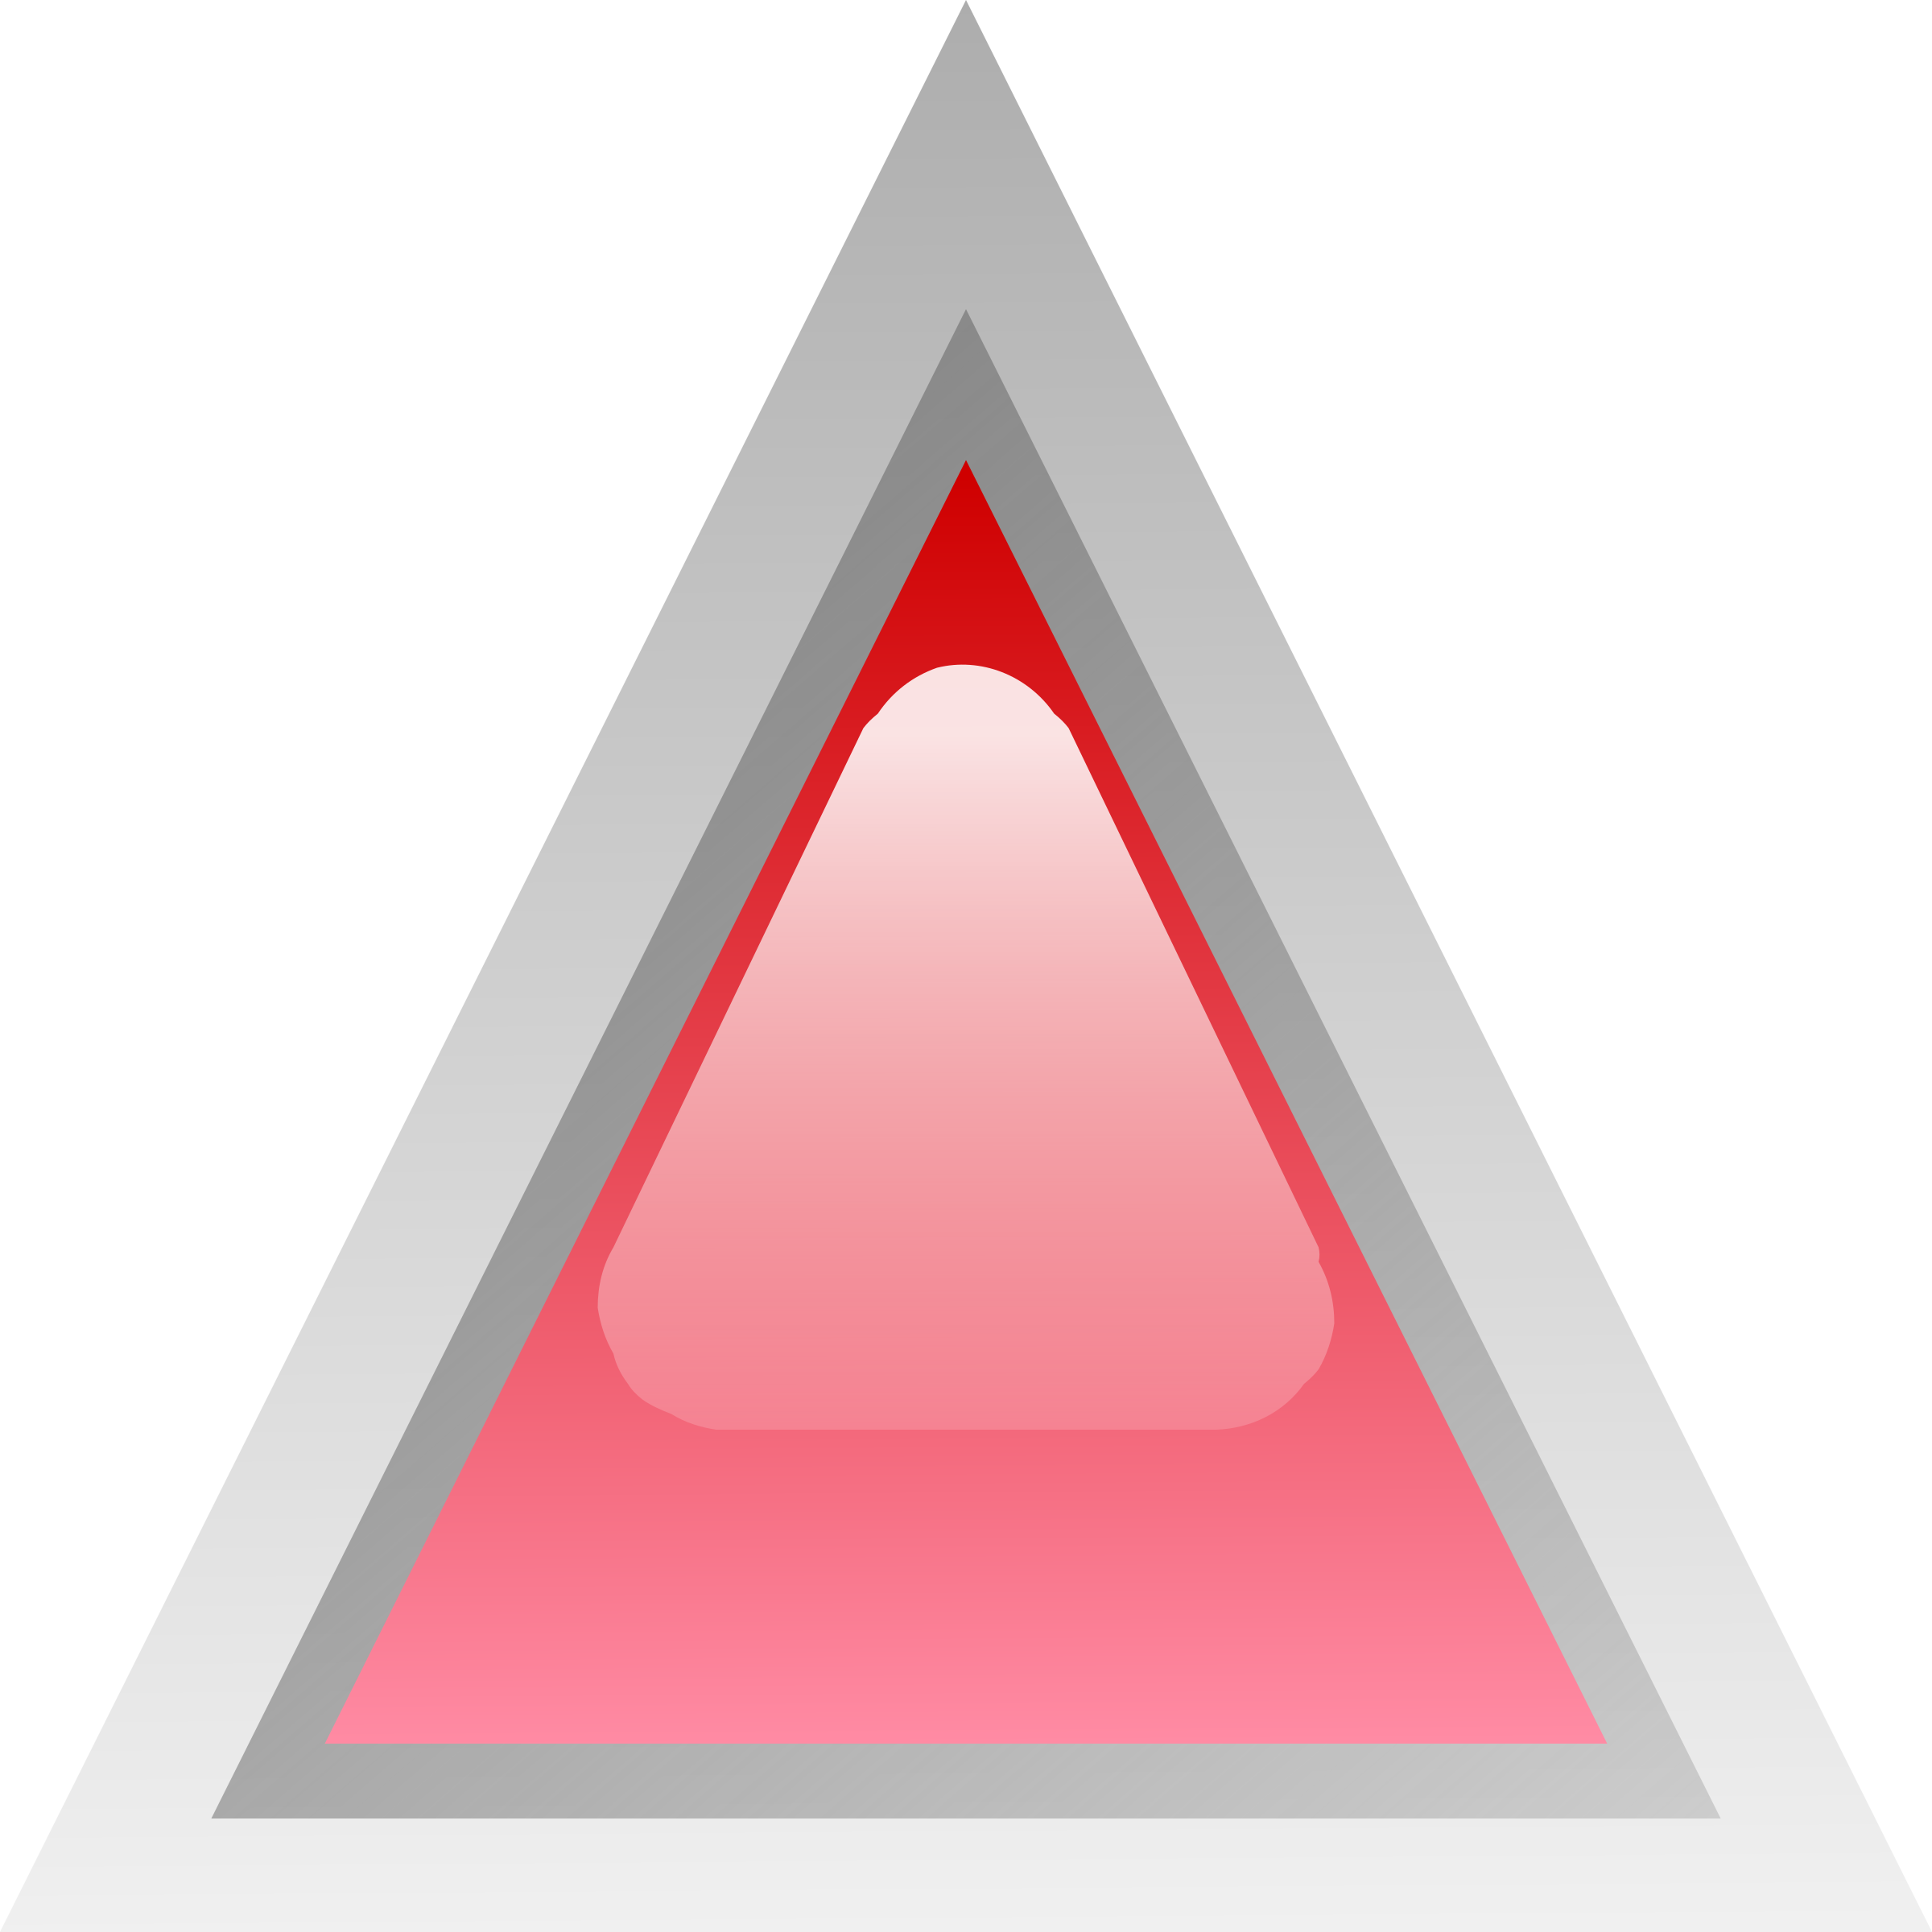 led triangular red  by Anonymous